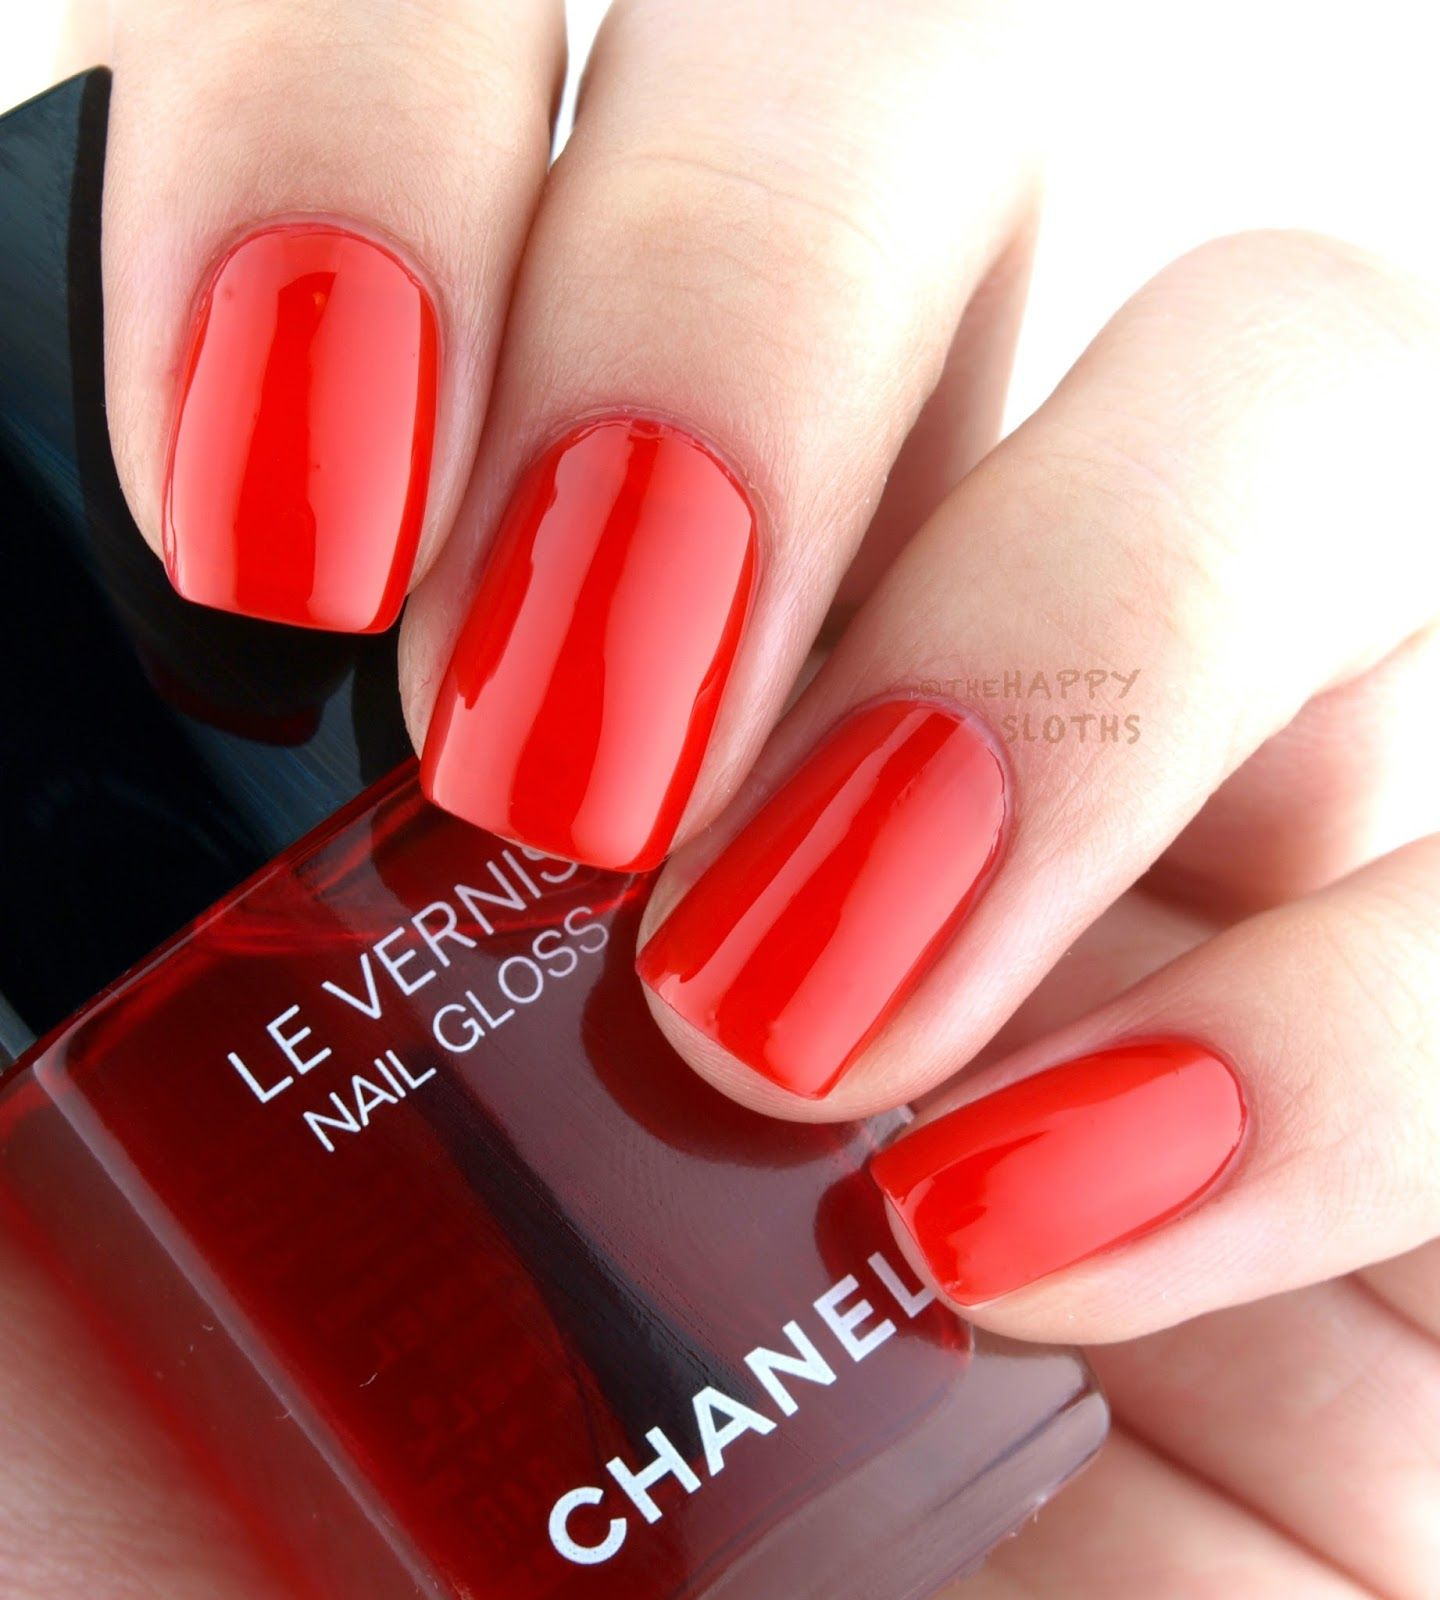 Chanel Fall 2016 Le Rouge N 1 Collection Le Vernis Nail Polishes Review And Swatches Nail Polish Chanel Nail Polish Nails